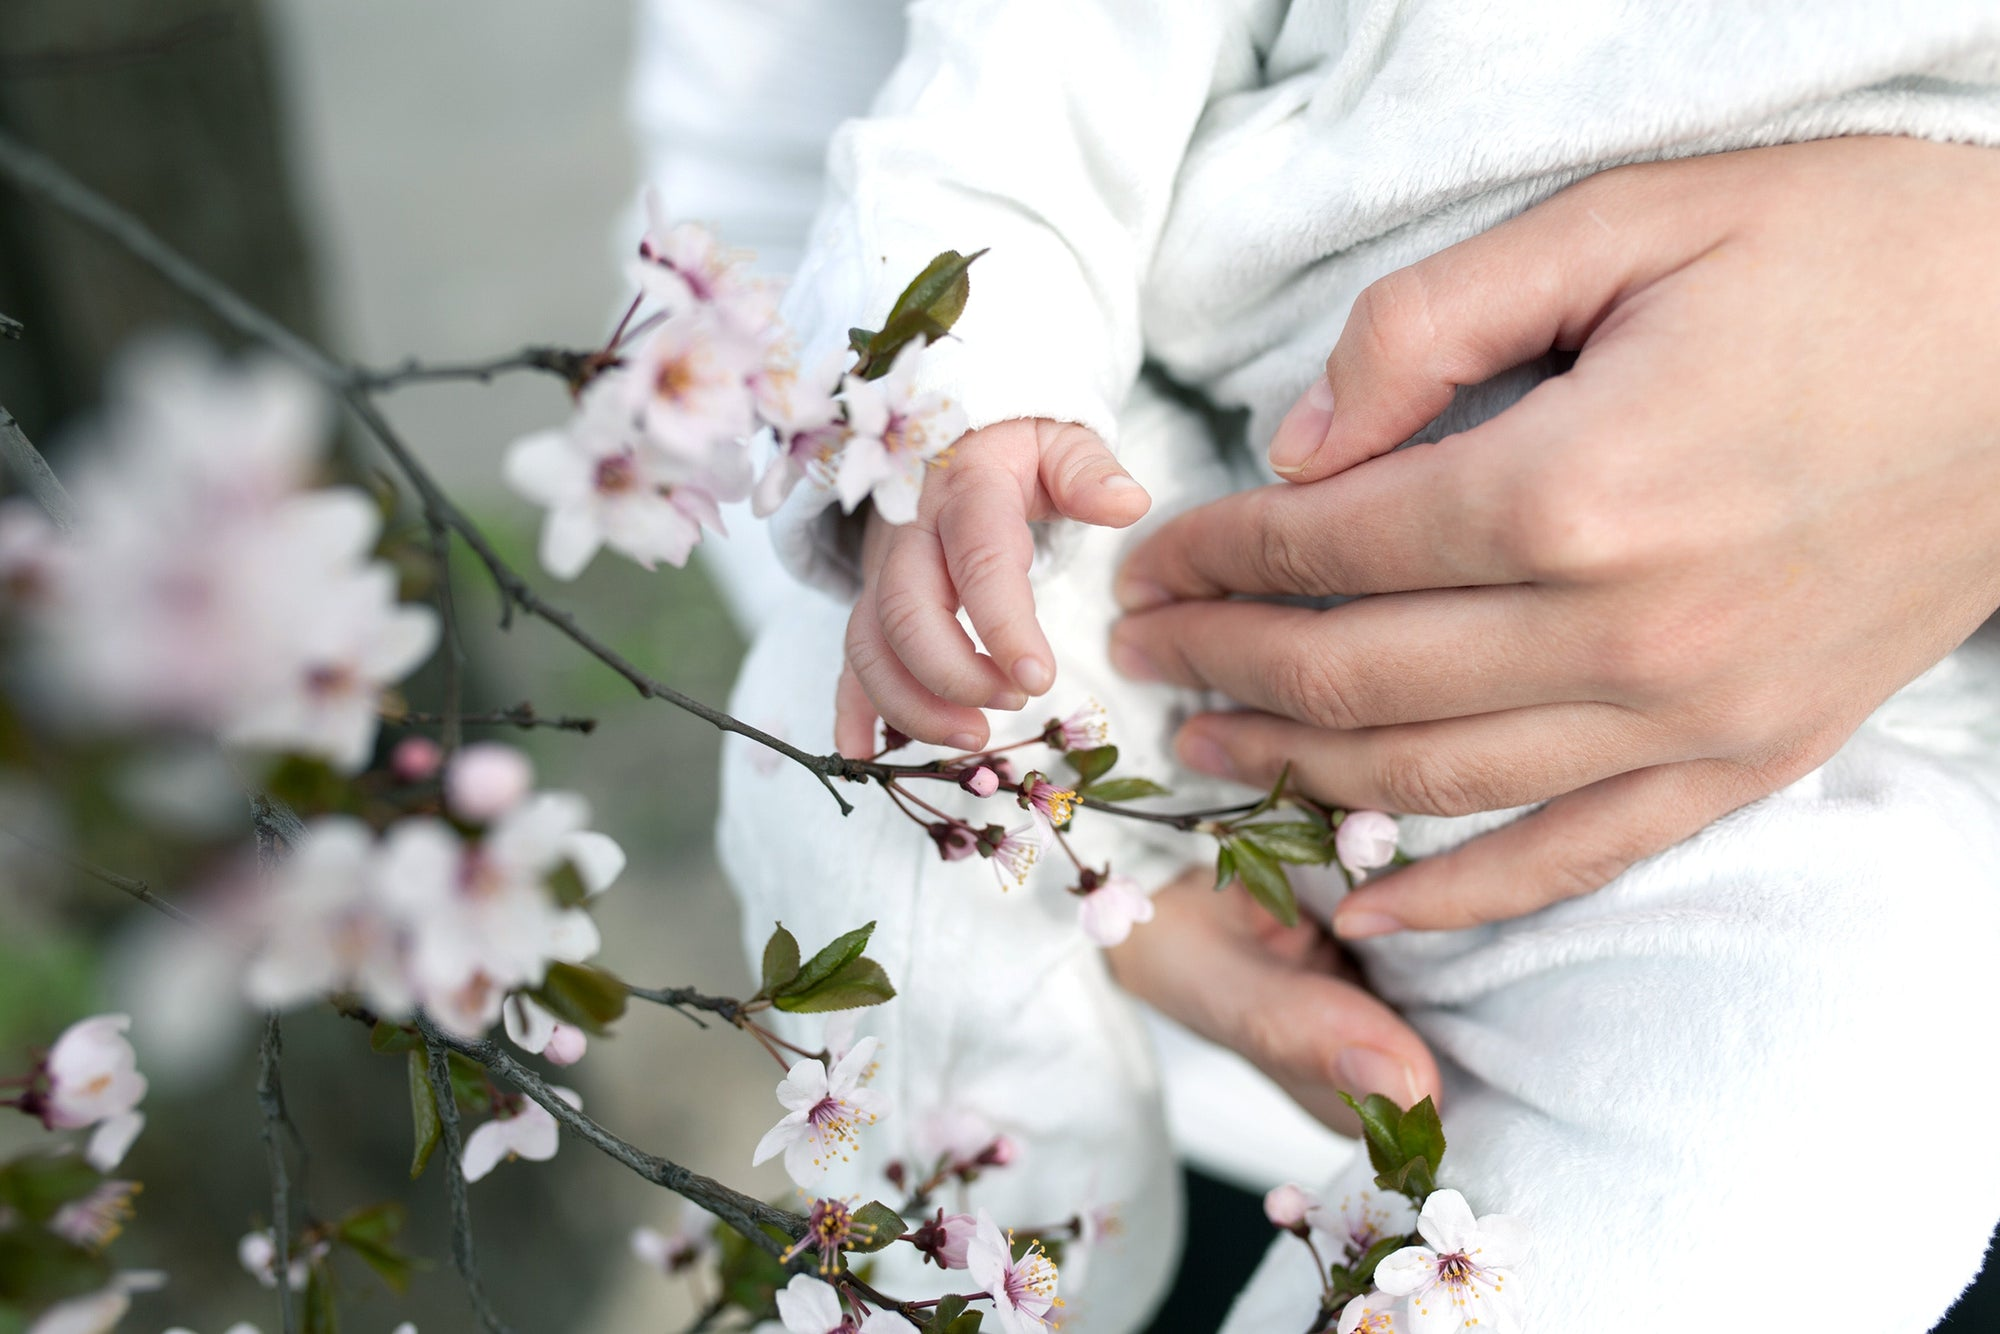 Baby touching flowers. children's hands closeup Mother hold child near cherry flowers